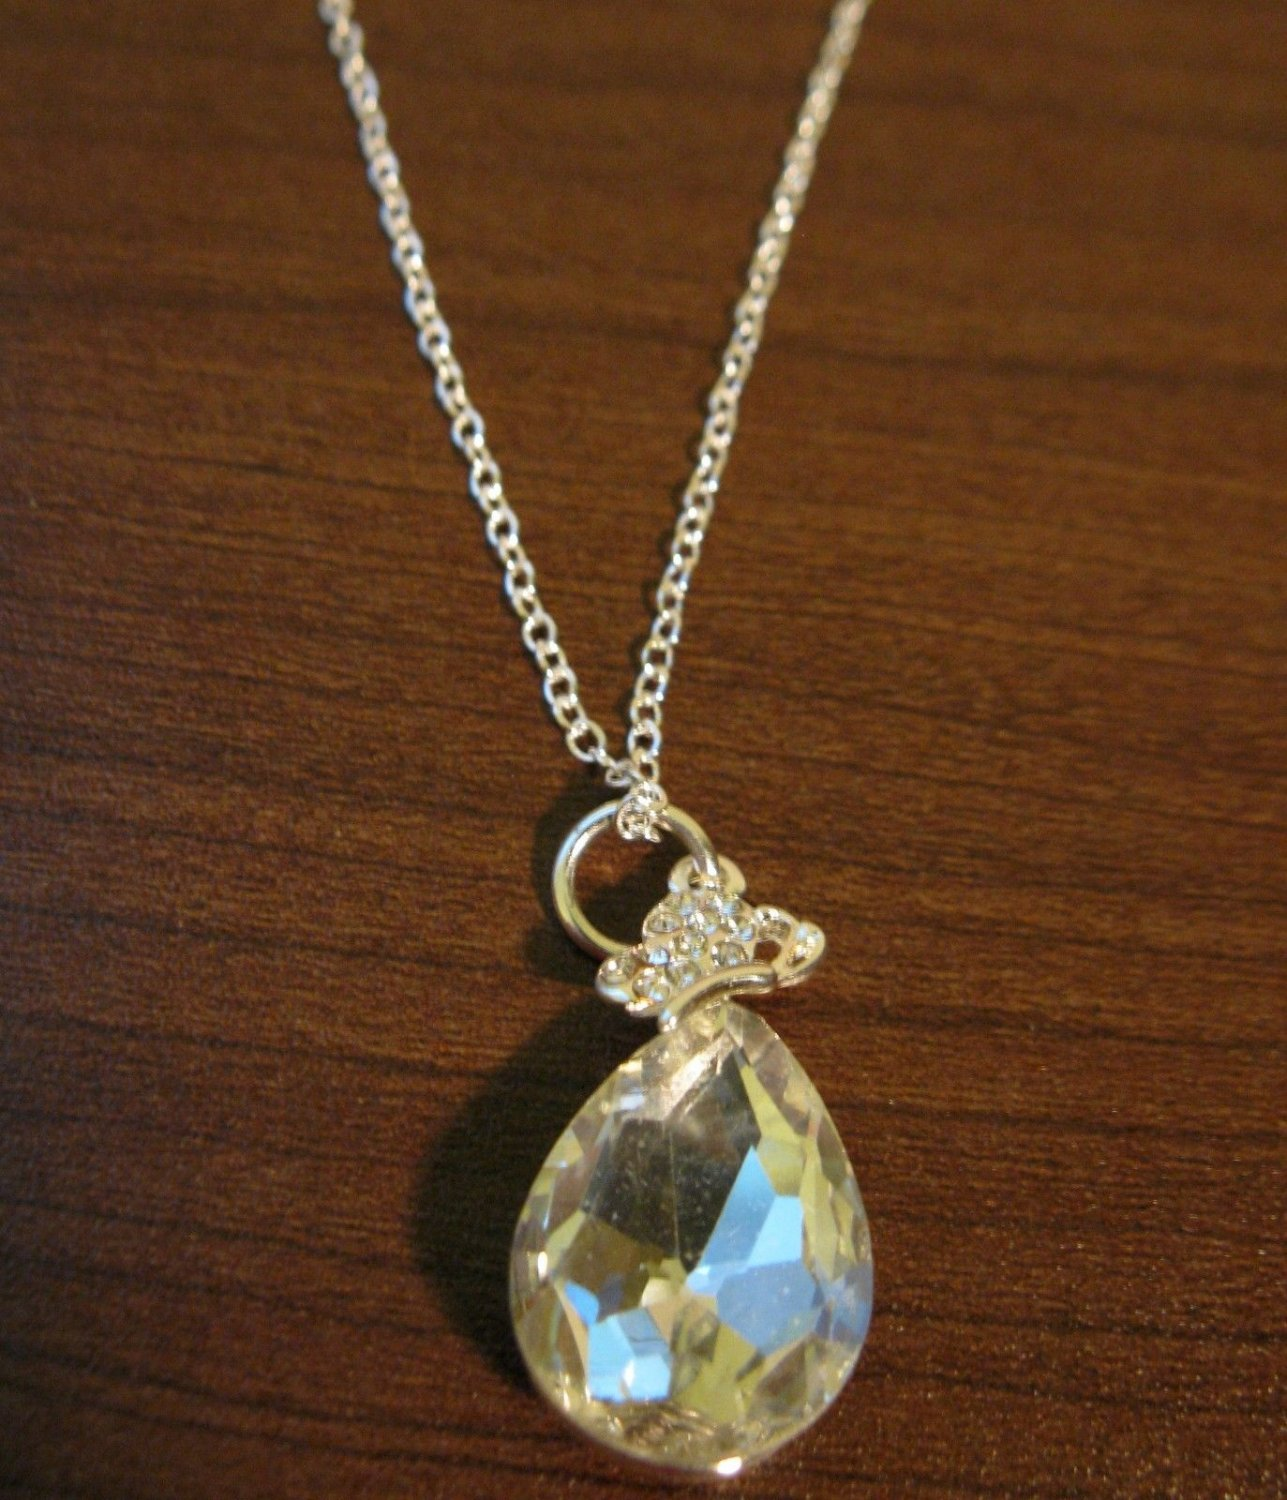 Chic Silver Pear Shaped White Topaz Solitaire Necklace & Pendant NEW! #D589